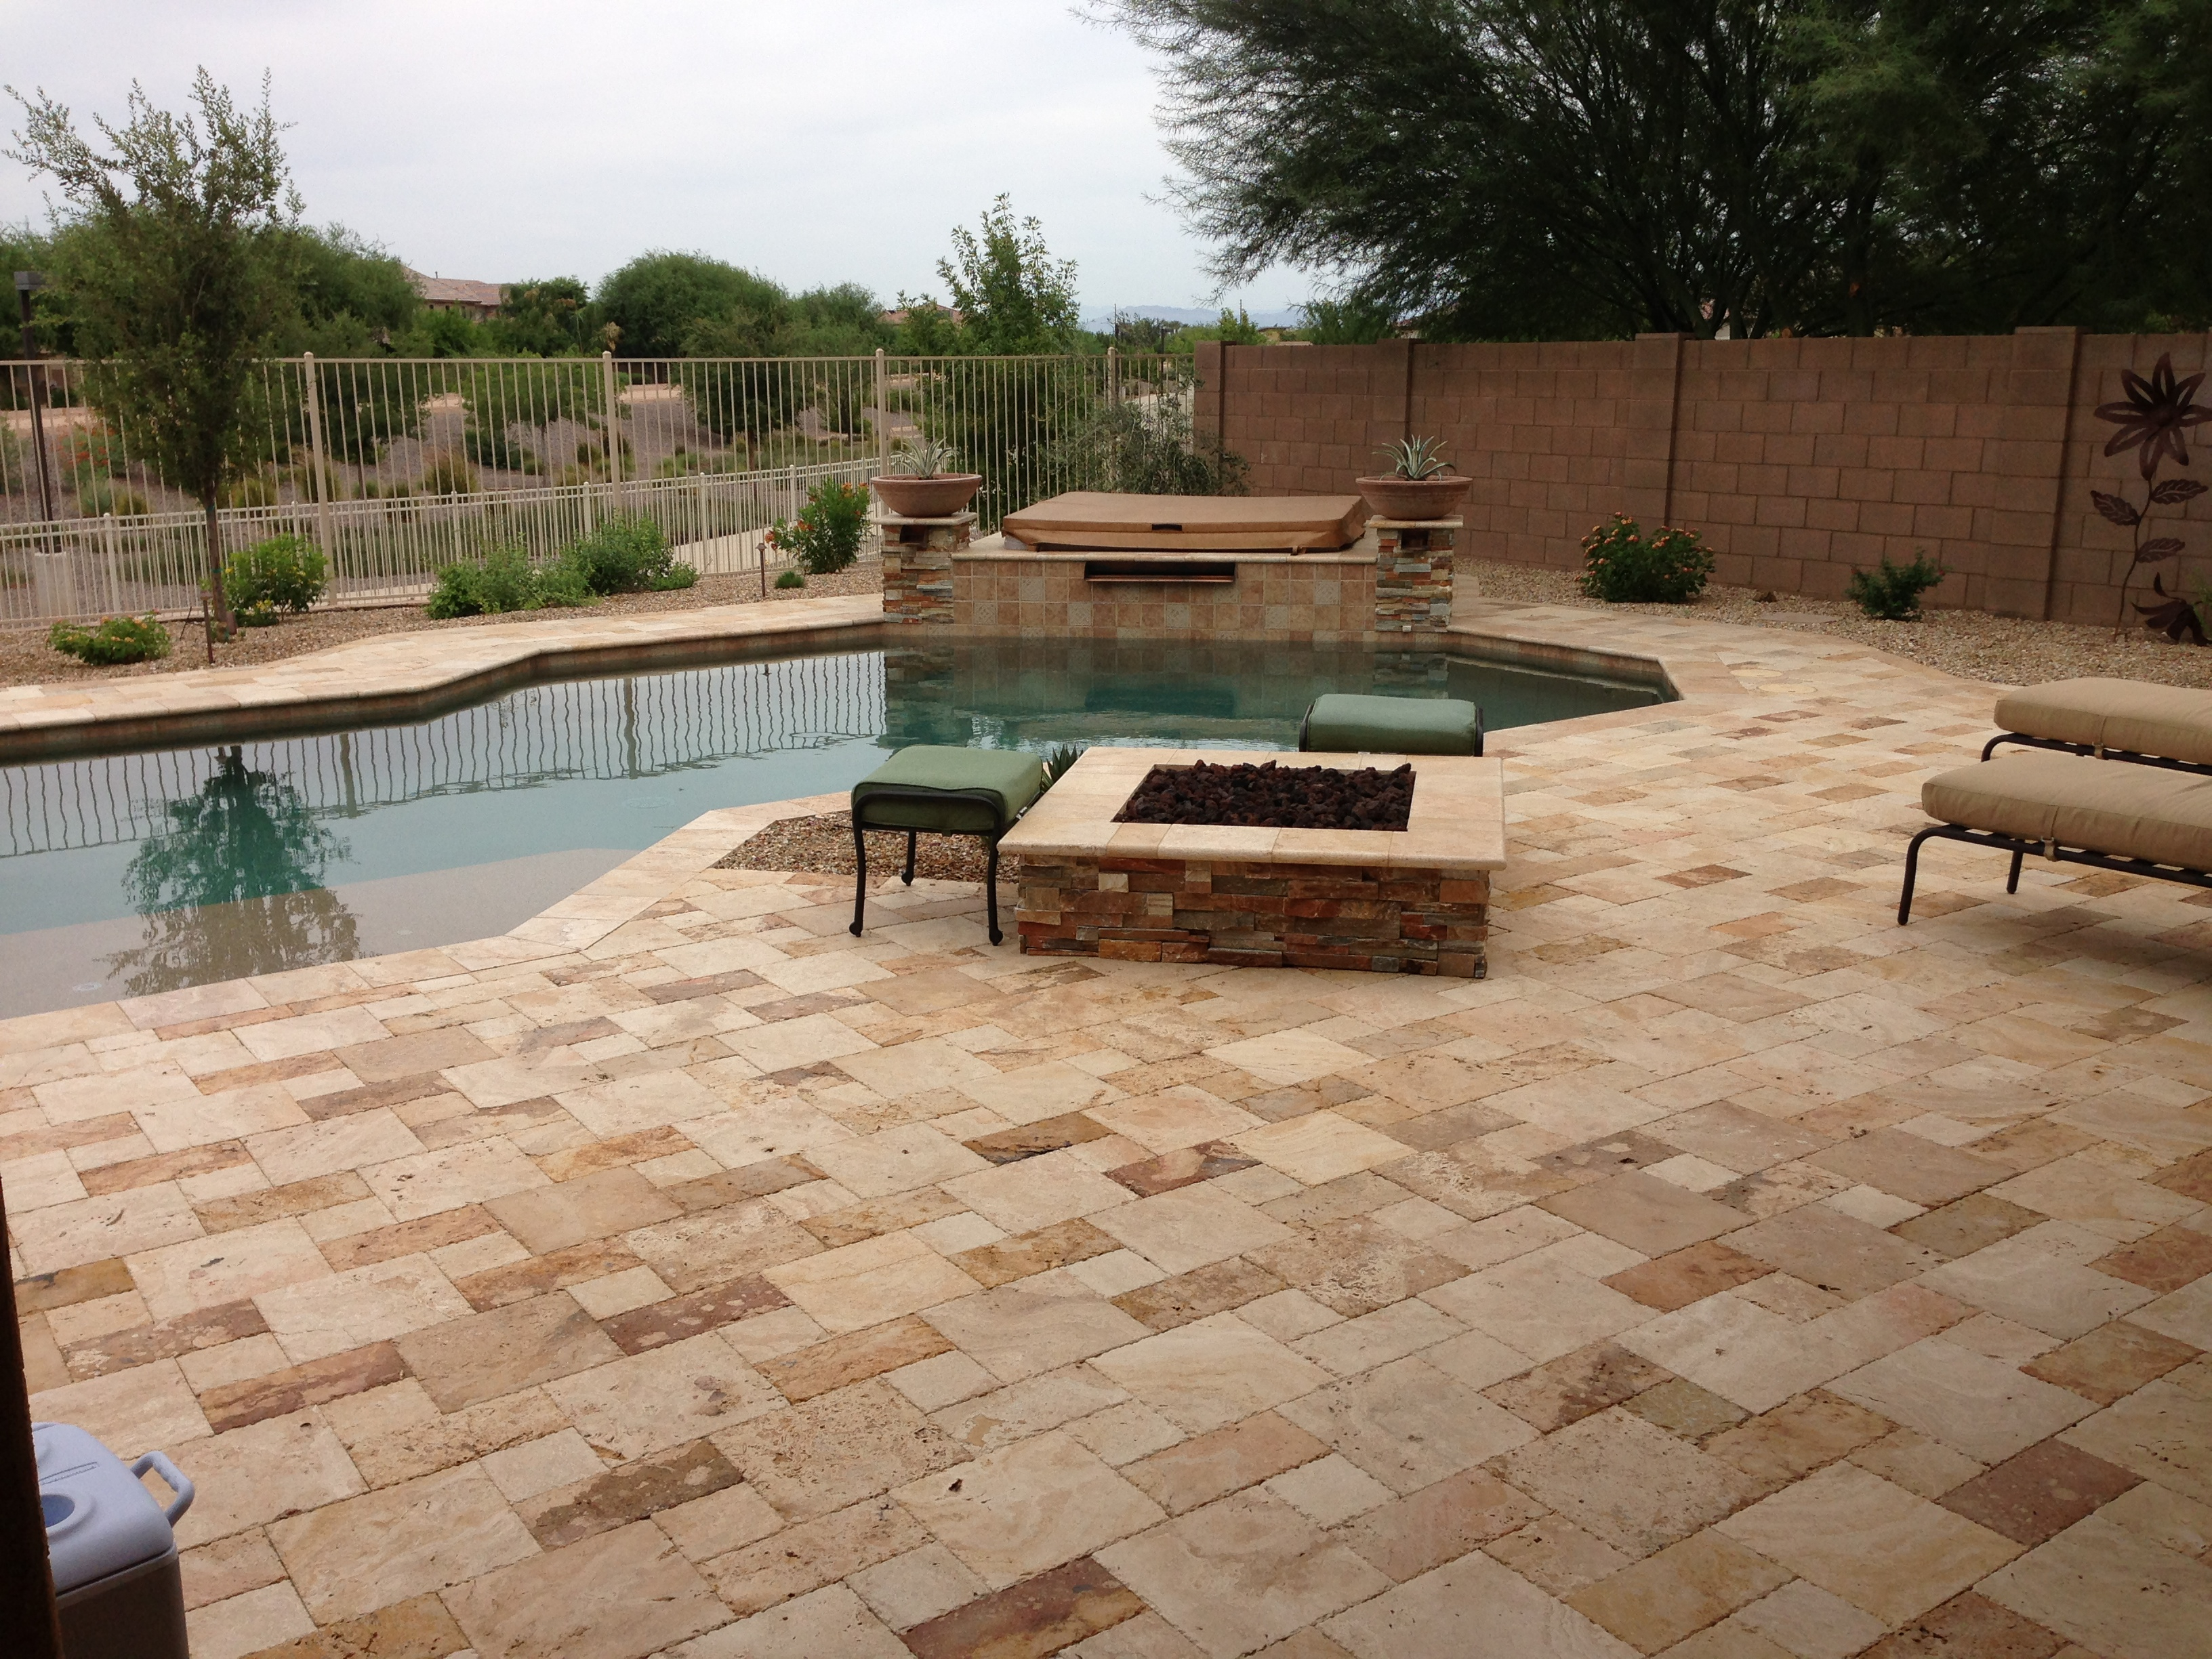 Outdoor Kitchen On Arizona Backyard Landscape Design Sard Info in Arizona Backyard Landscaping Ideas